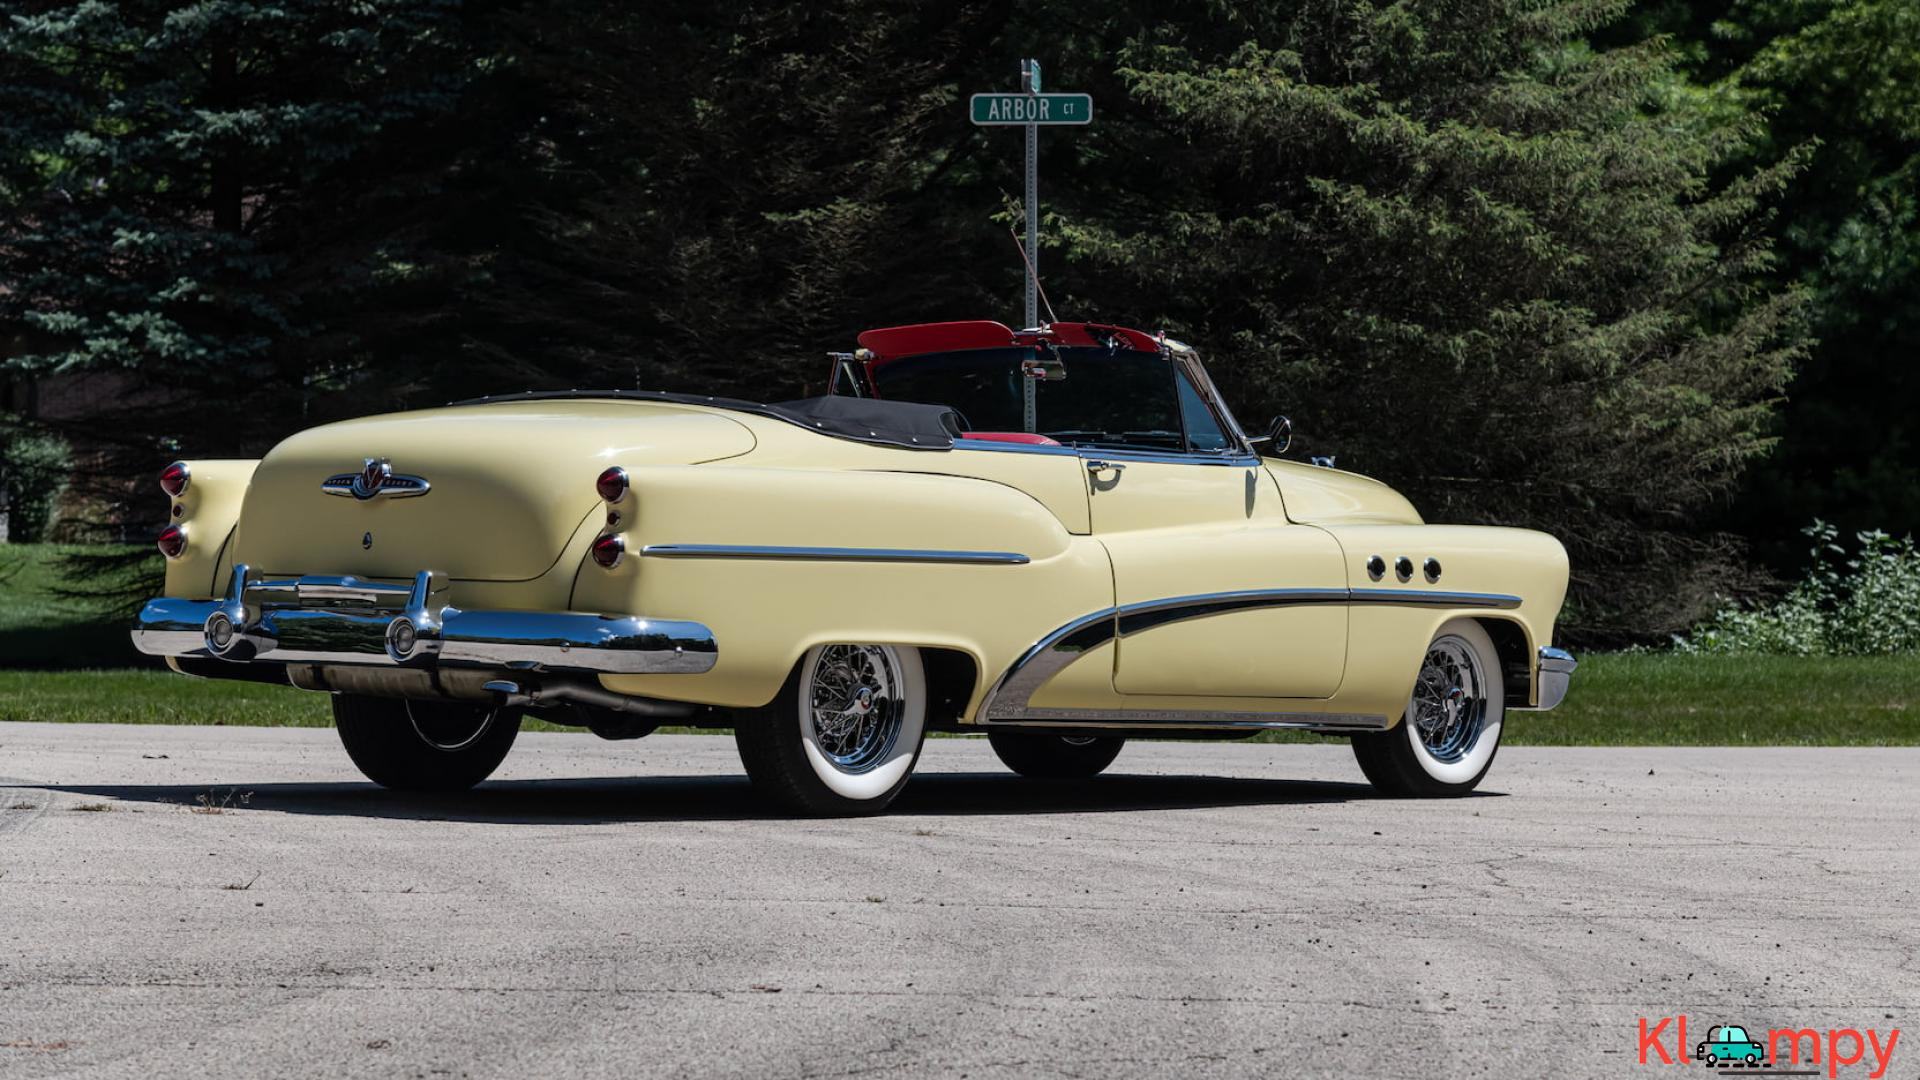 1953 Buick Super Eight Convertible - 11/15